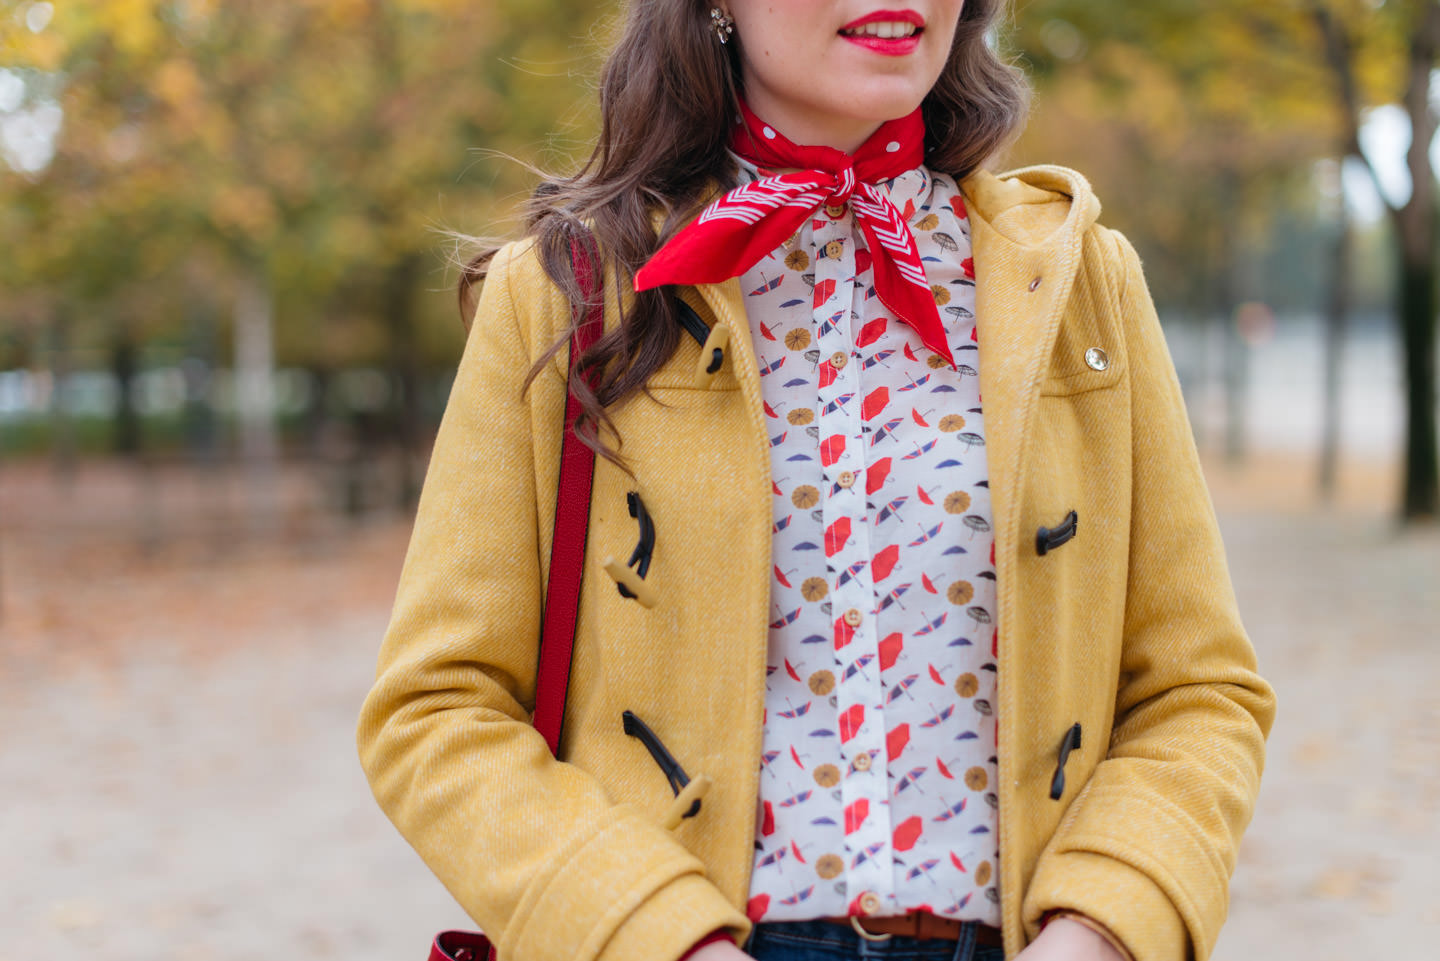 Blog-Mode-And-The-City-Lokks-Fille-de-Automne